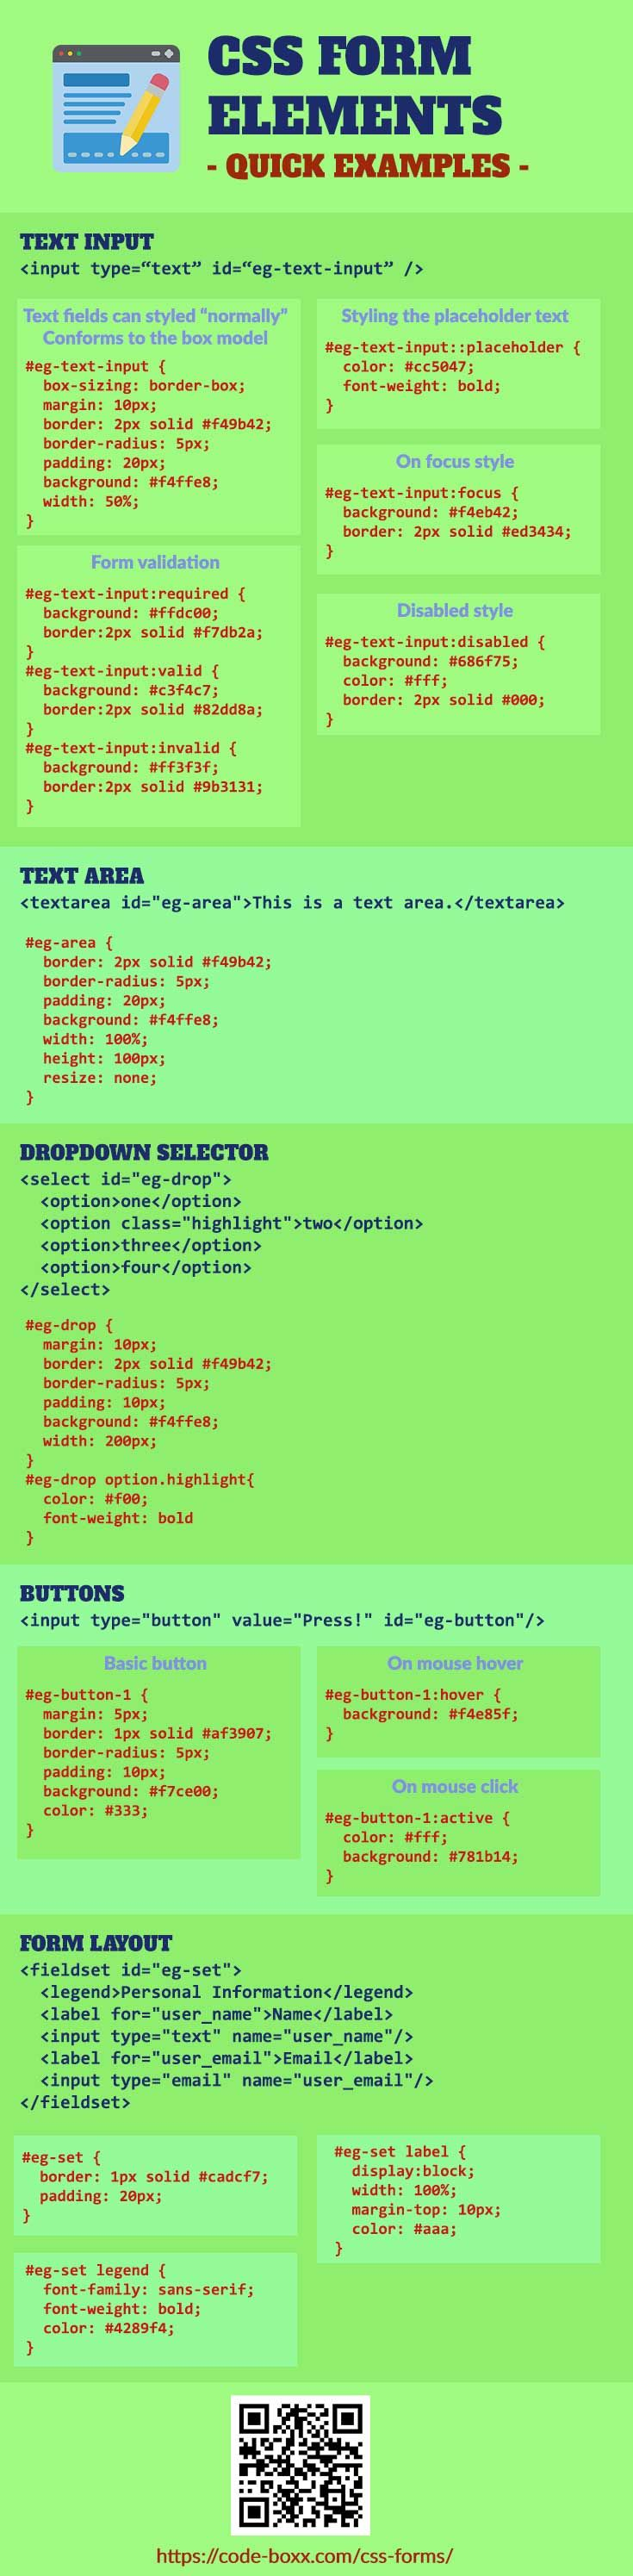 CSS Forms Explained For Beginners Web design tips